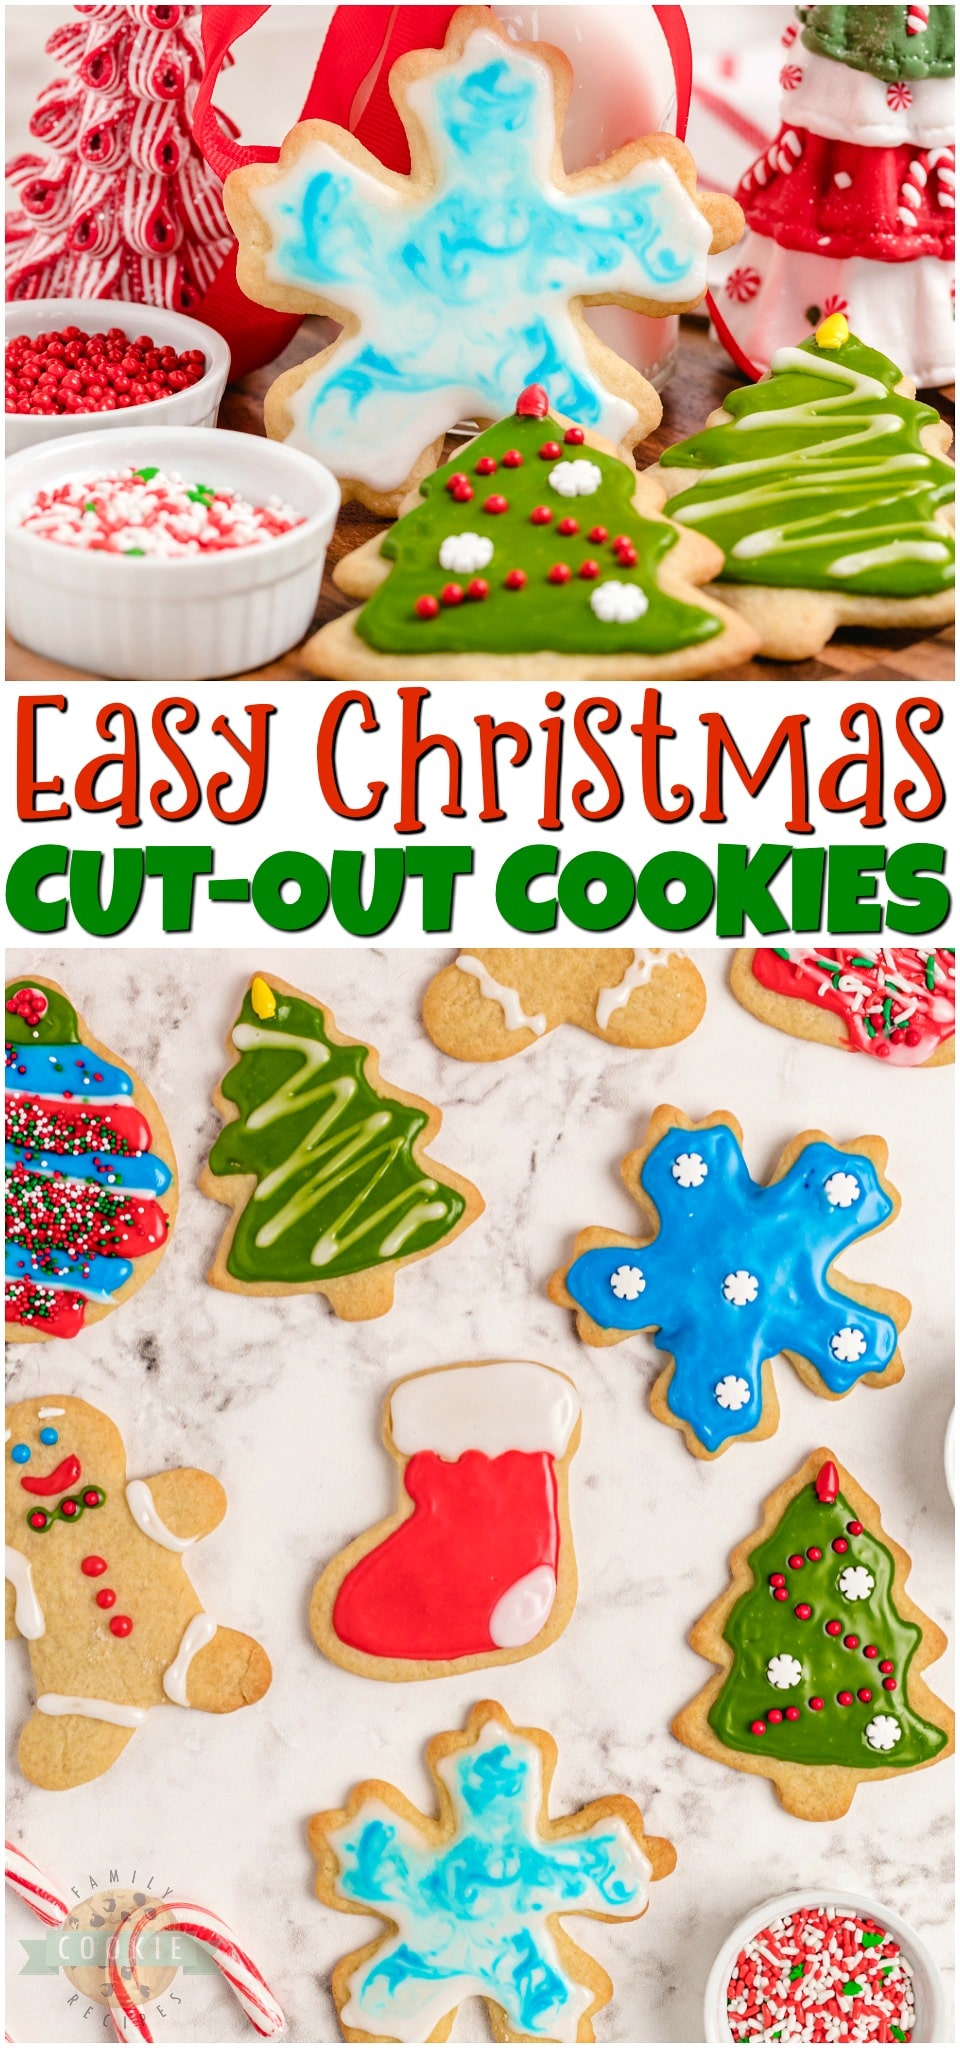 Classic Christmas Cut-Out Cookies perfect for the holidays! Easy sugar cookies for cookie cutters with a simple shiny cookie icing that everyone loves. #baking #cookies #Christmas #cutout #cookiecutters #cookieicing #sprinkles #hollidaybaking #easyrecipe from FAMILY COOKIE RECIPES via @buttergirls